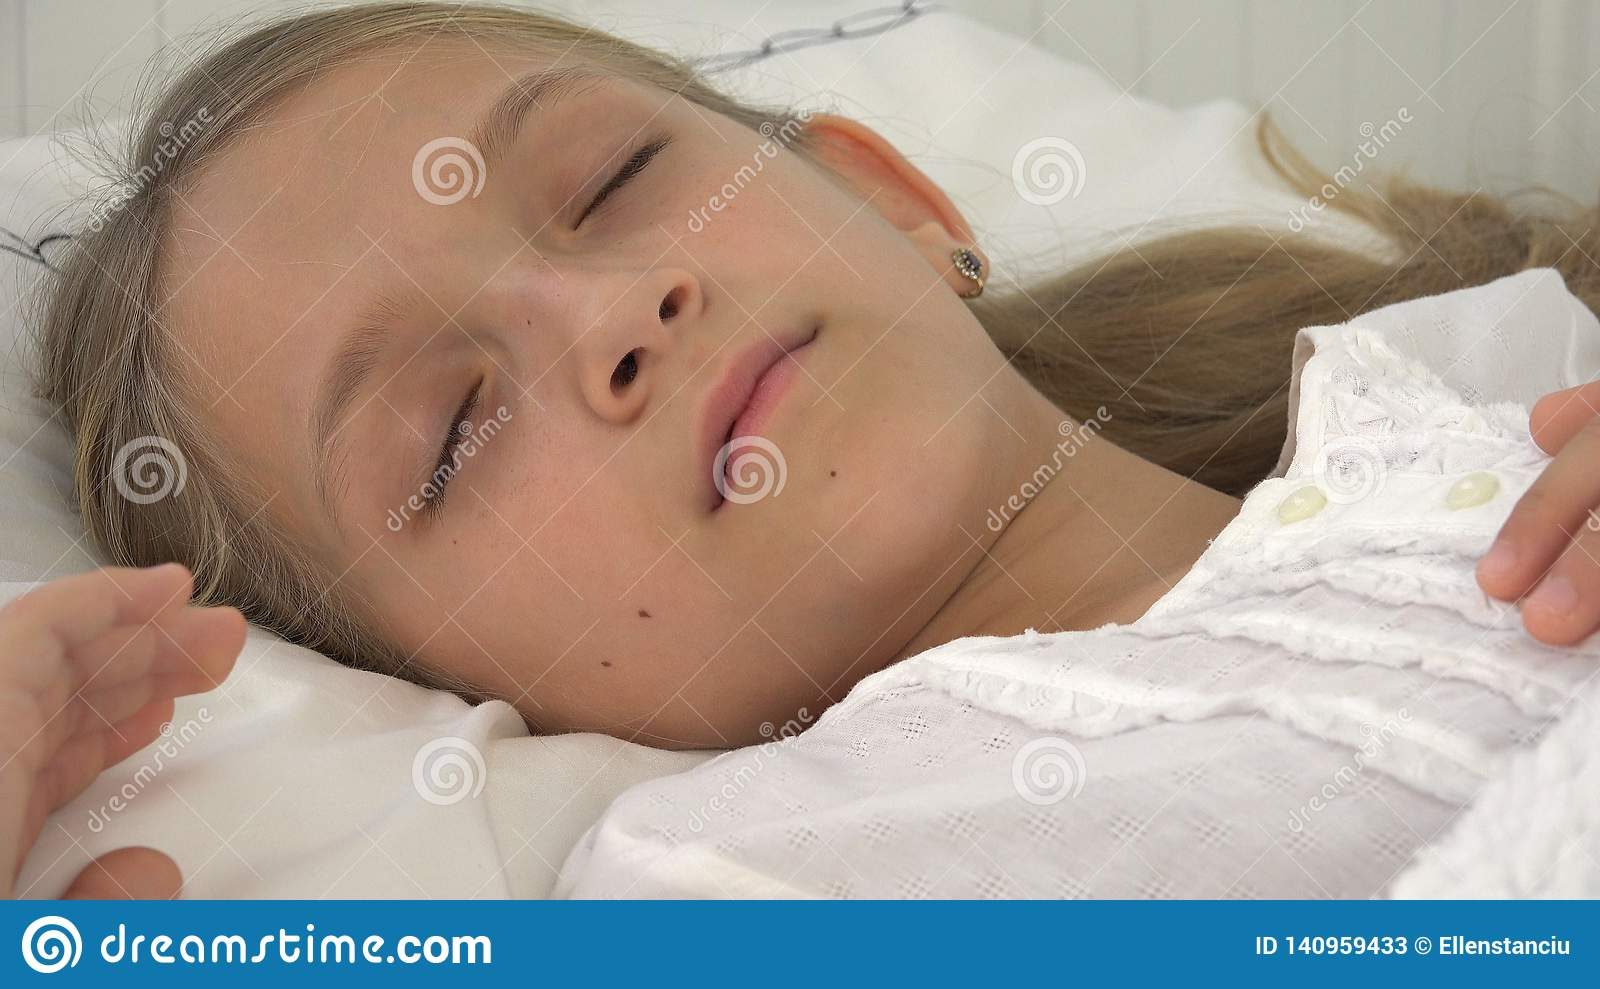 Sick Child in Bed, Ill Kid with Thermometer, Girl in Hospital, Pills Medicine